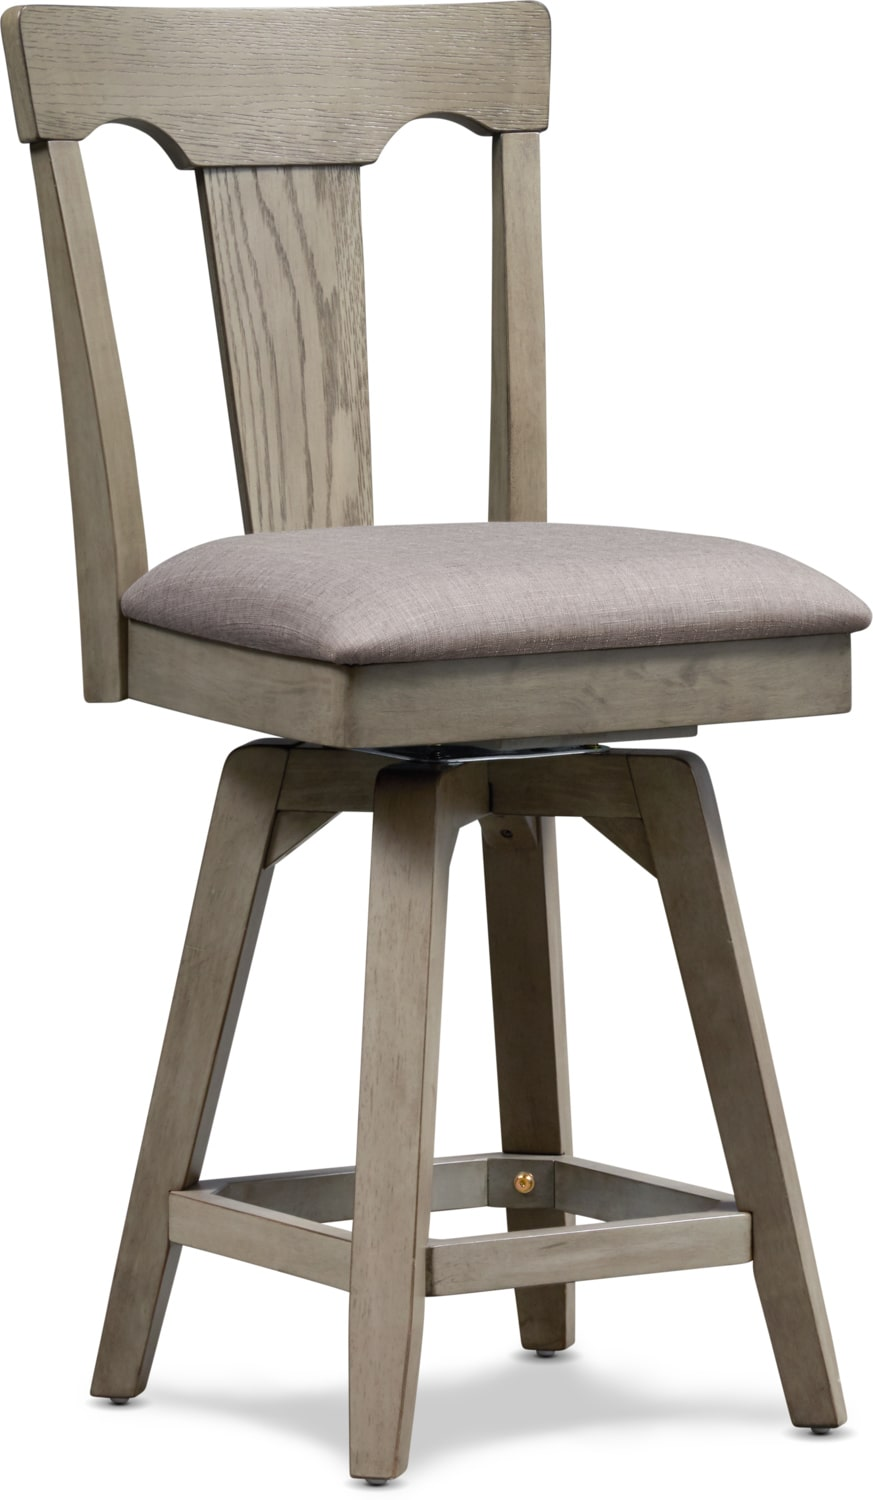 Dining Room Furniture - Maxton Counter-Height Stool